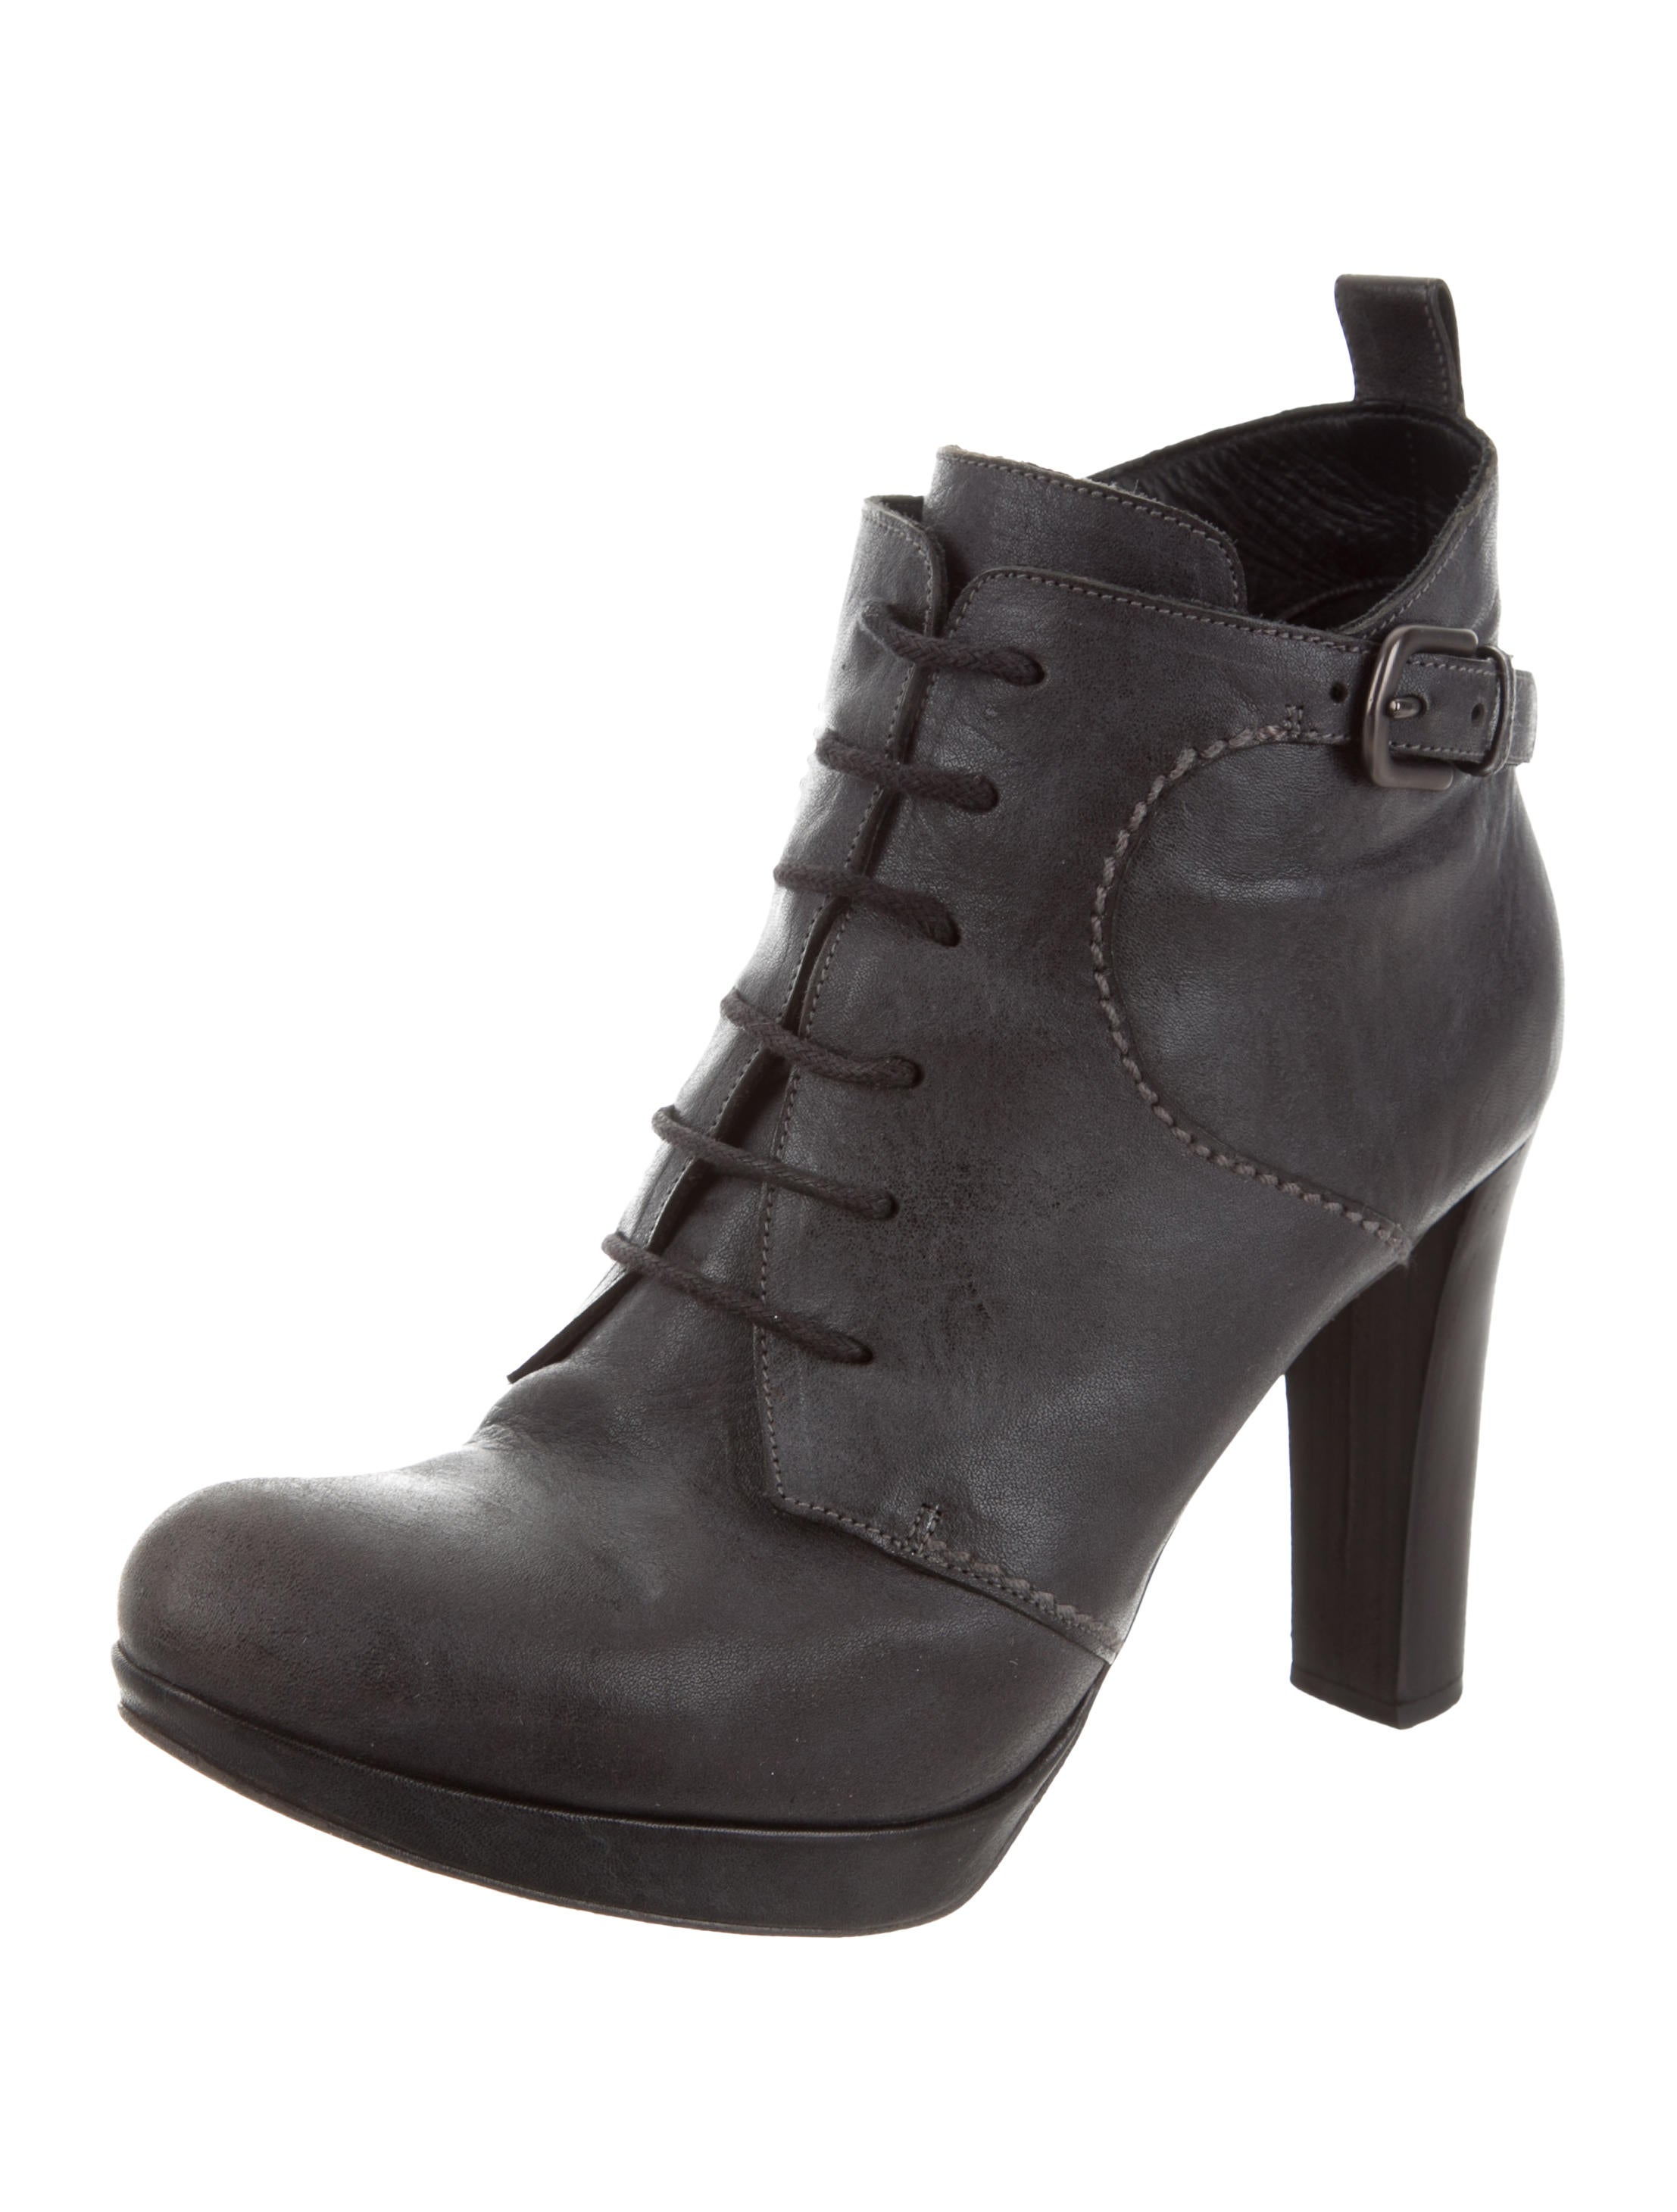 many kinds of cheap price Henry Beguelin Leather Lace-Up Ankle Boots buy cheap order buy cheap footlocker pictures cheap get to buy oiP7Cb